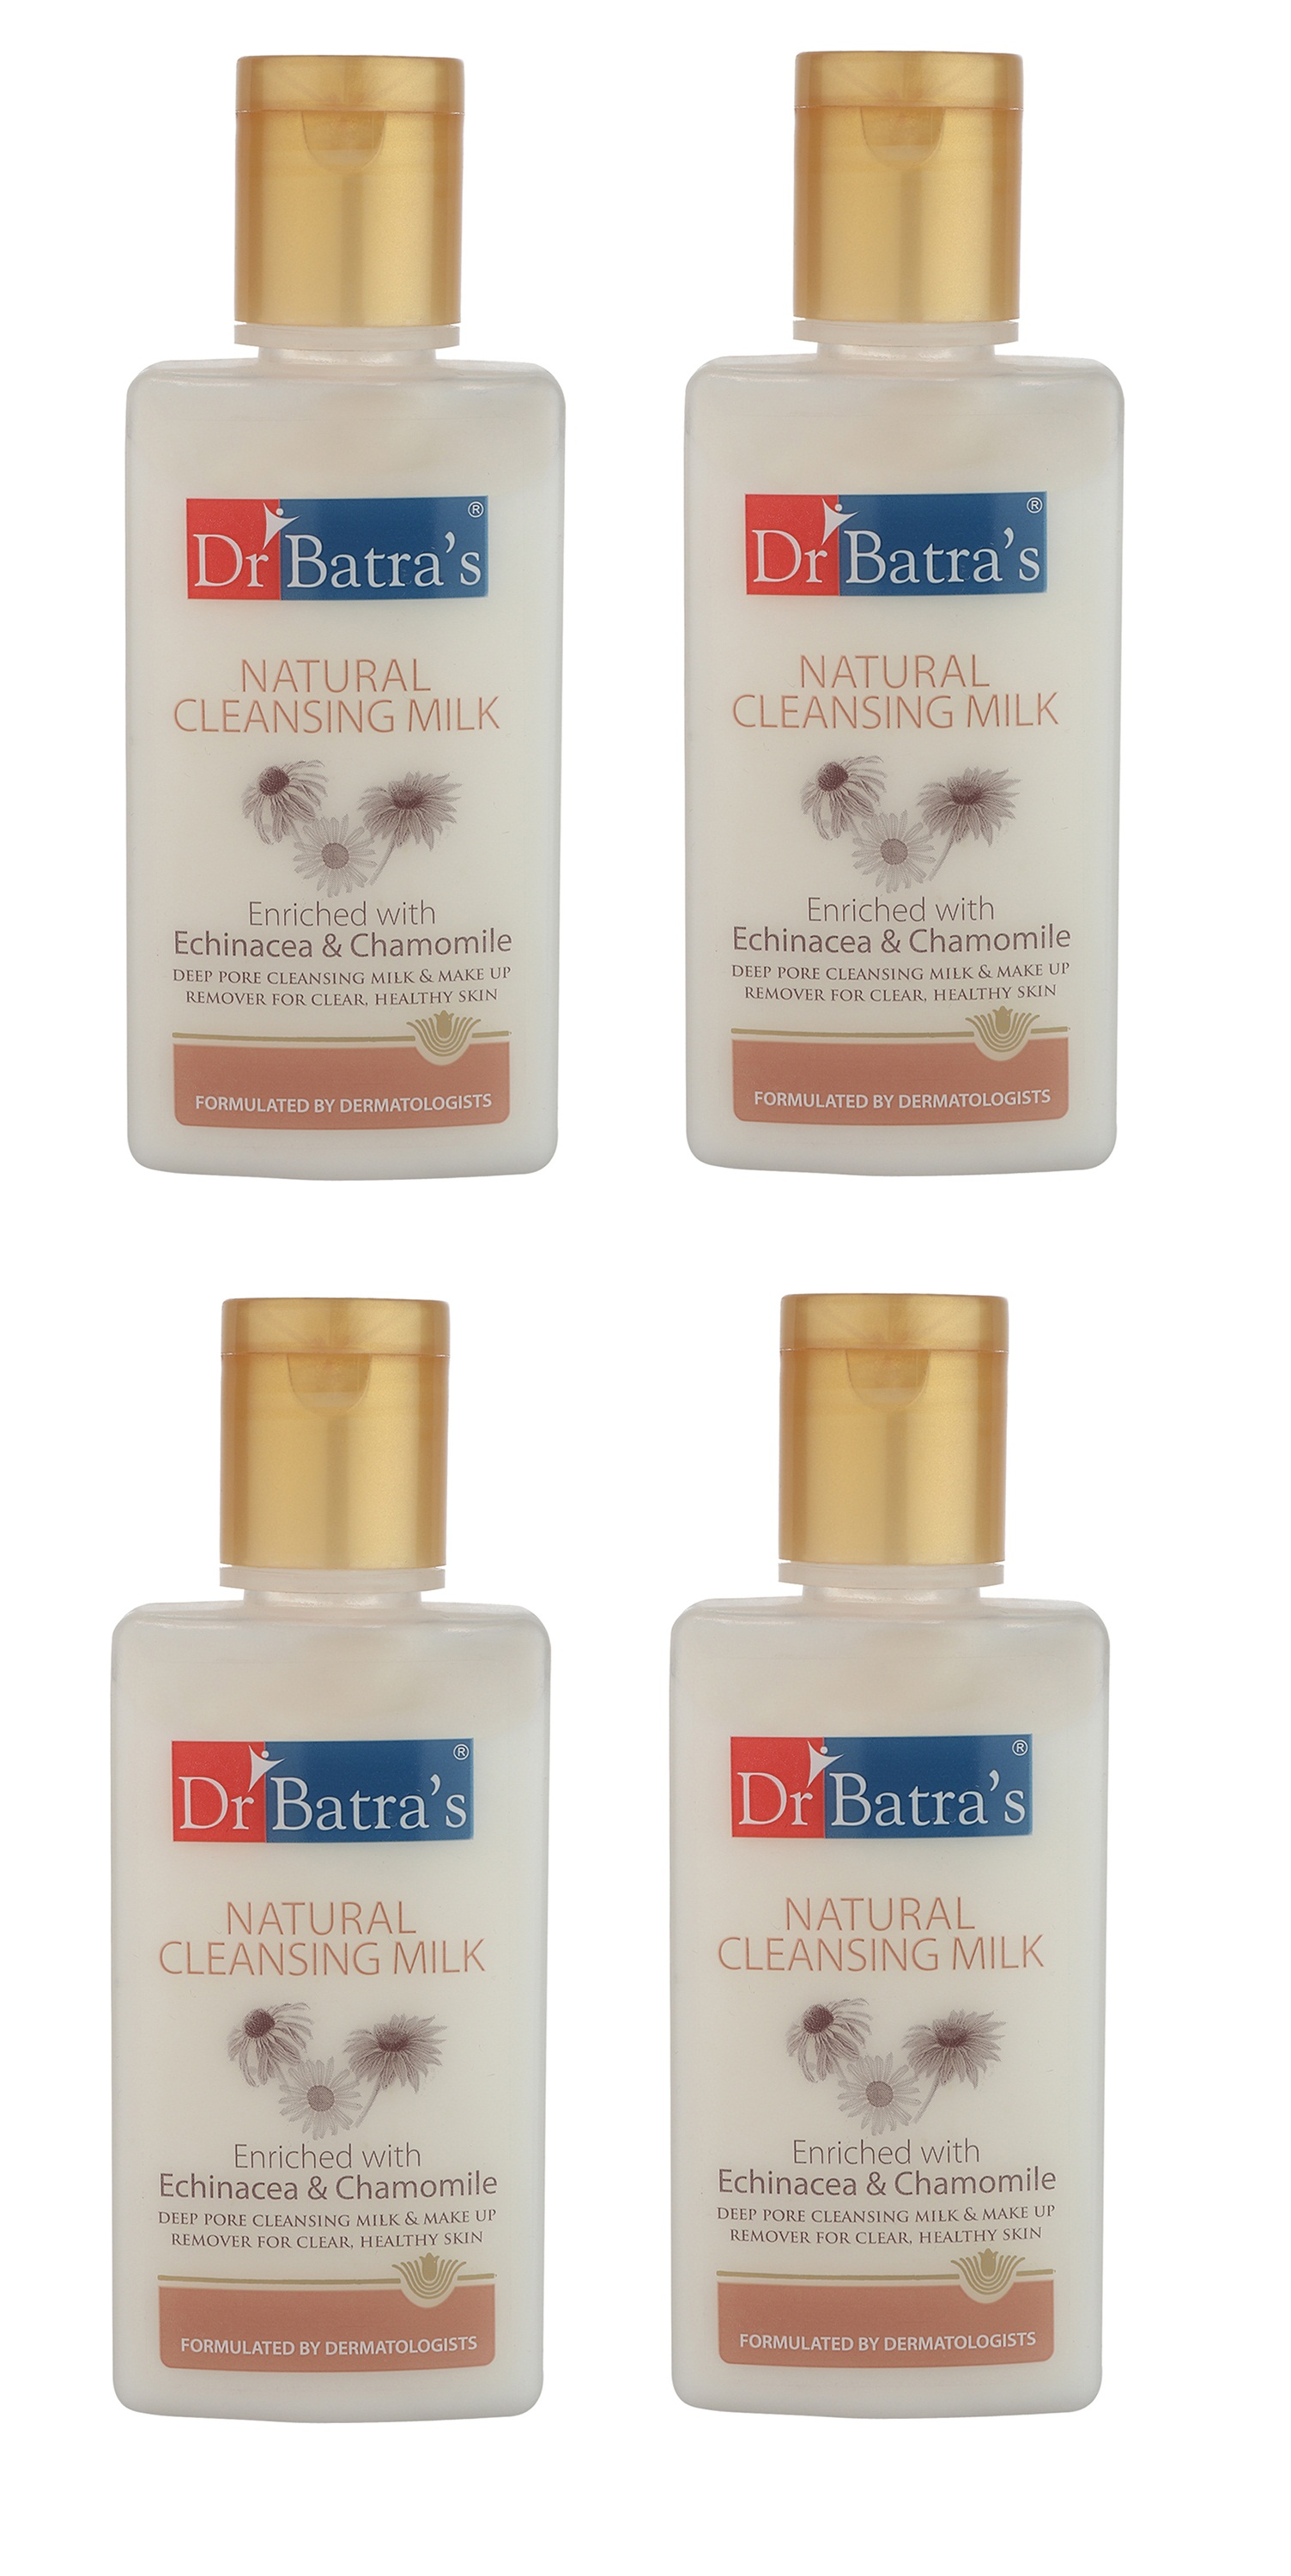 Dr Batra's | Dr Batra's Natural Cleansing Milk Enriched With Echinacea & Chamomile - 100 ml (Pack of 4)